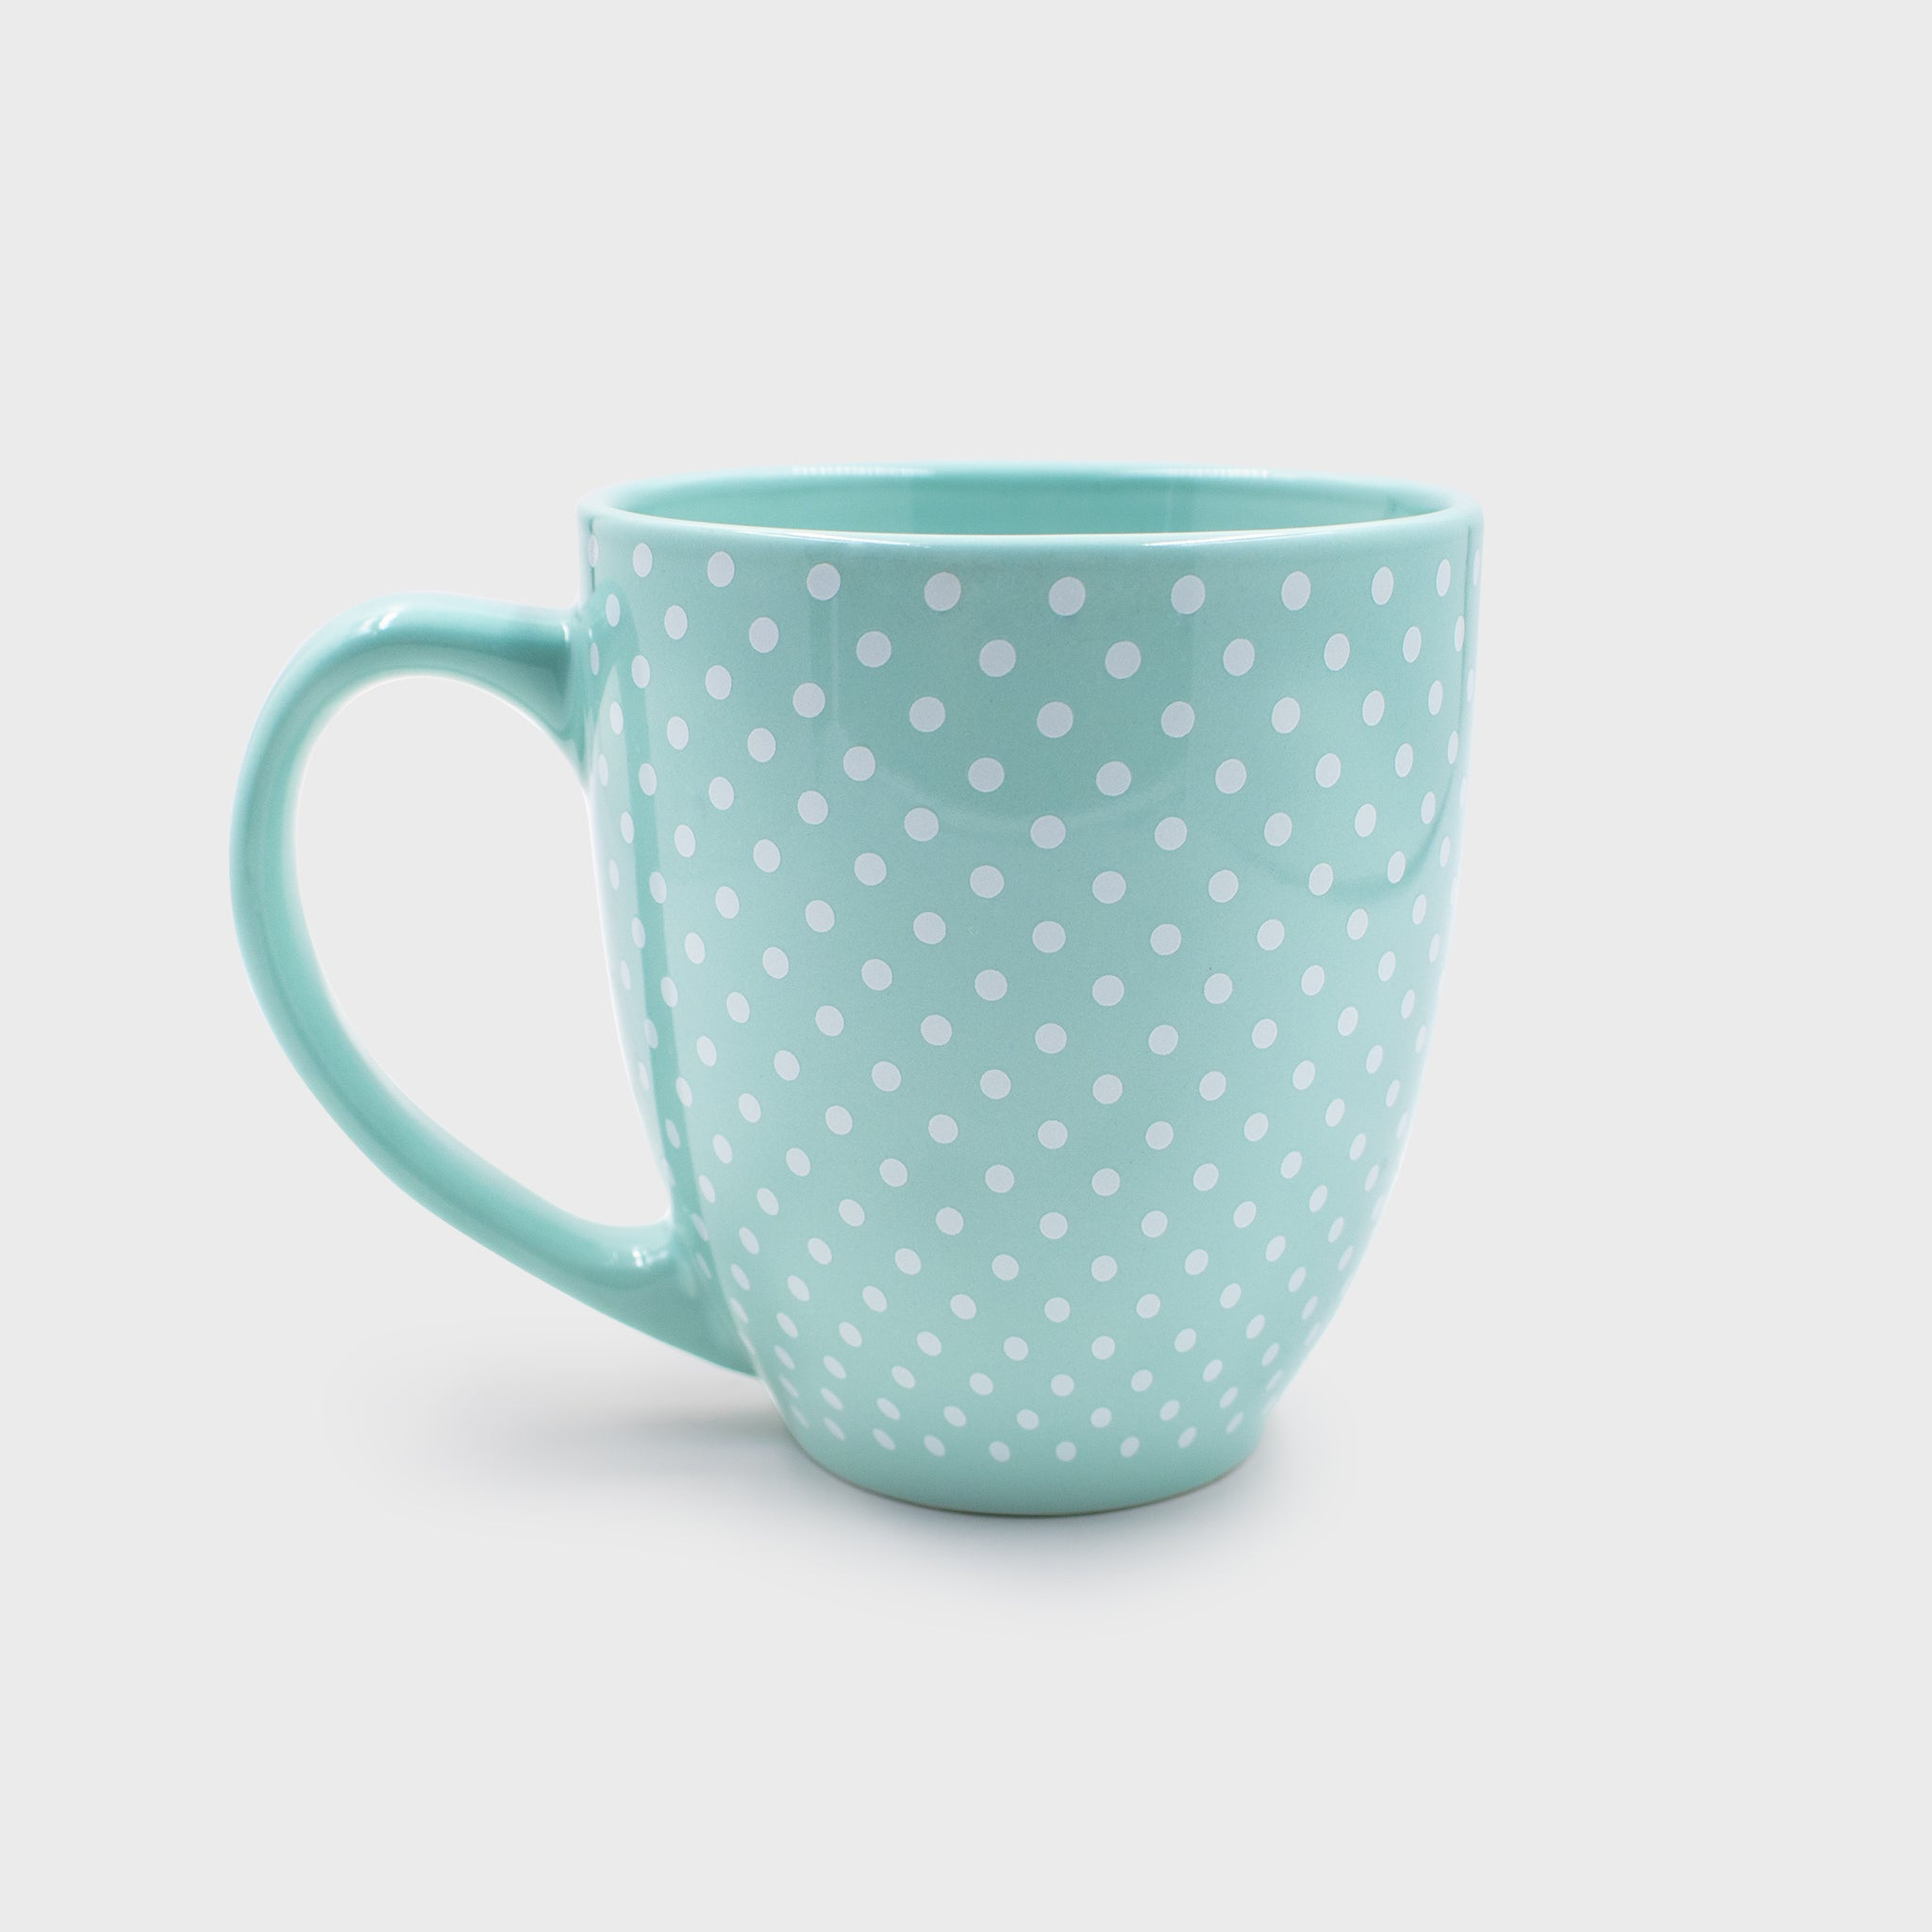 pusheen mug cup kitchenware polkadot cute cat culturefly